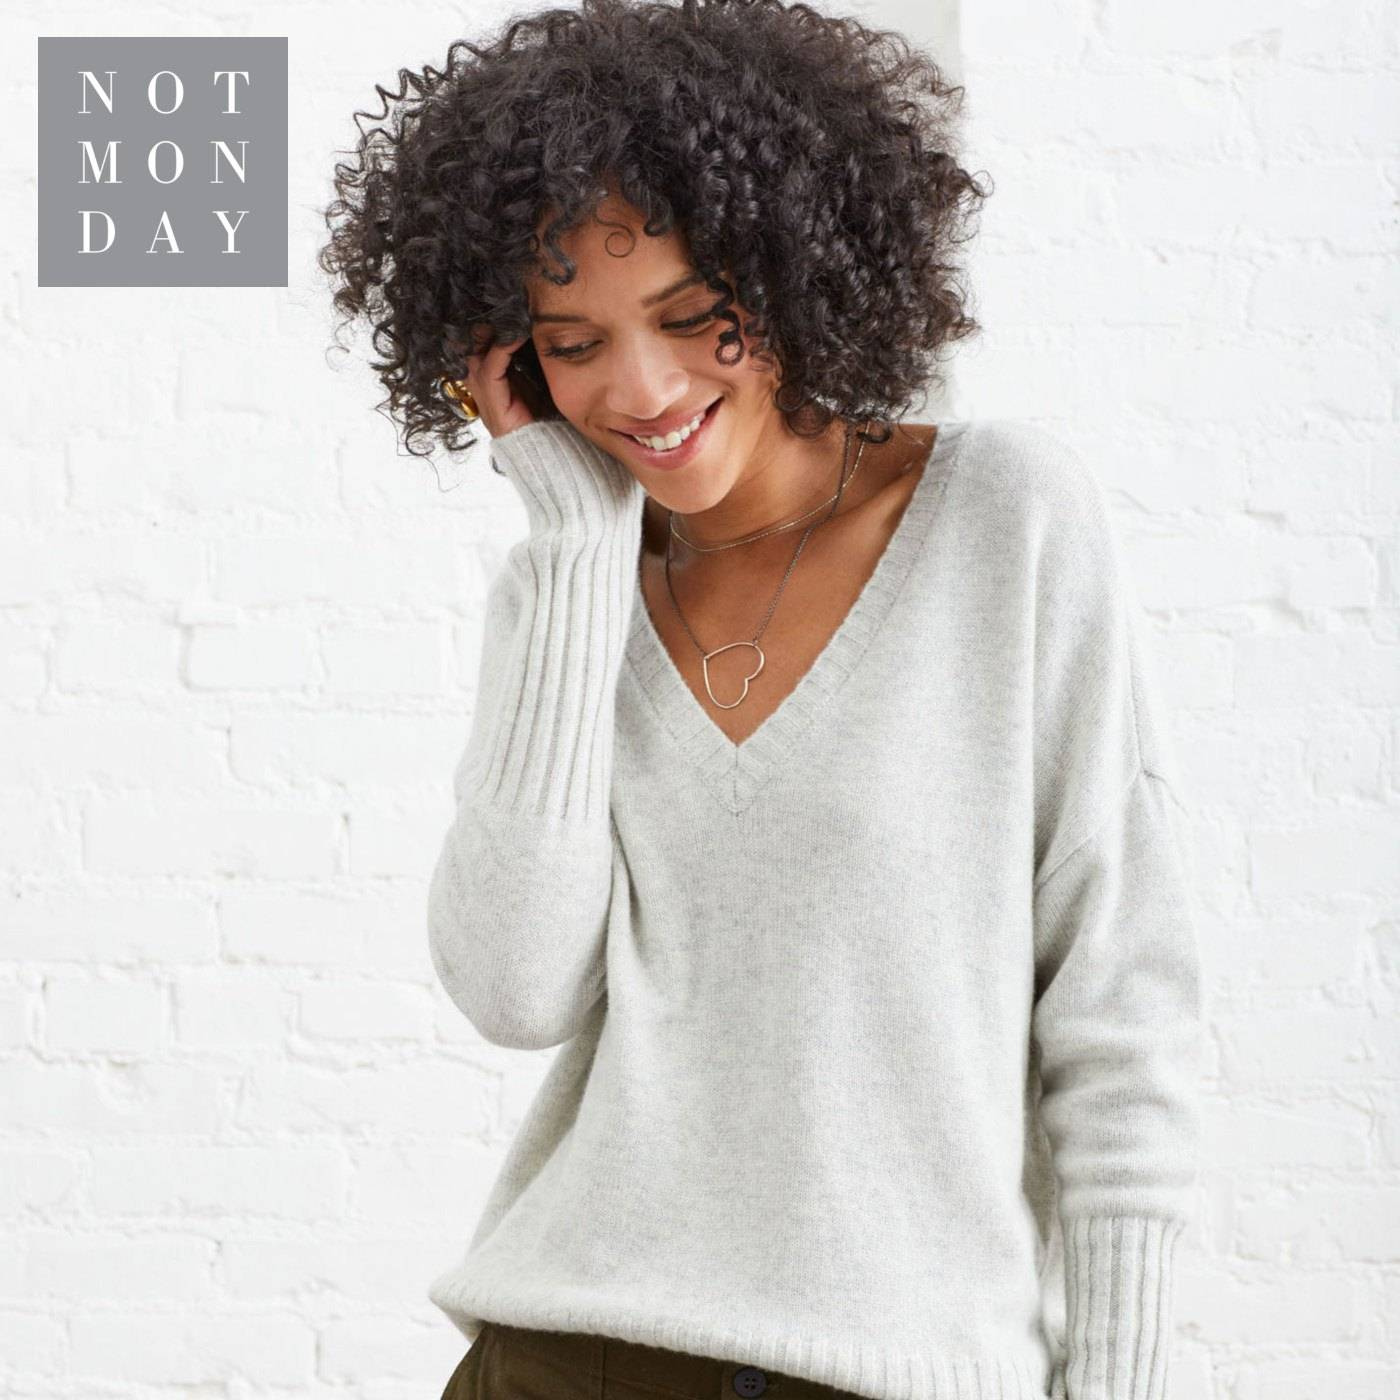 Ella V neck Cashmere Sweater in Cloud. Not Monday.